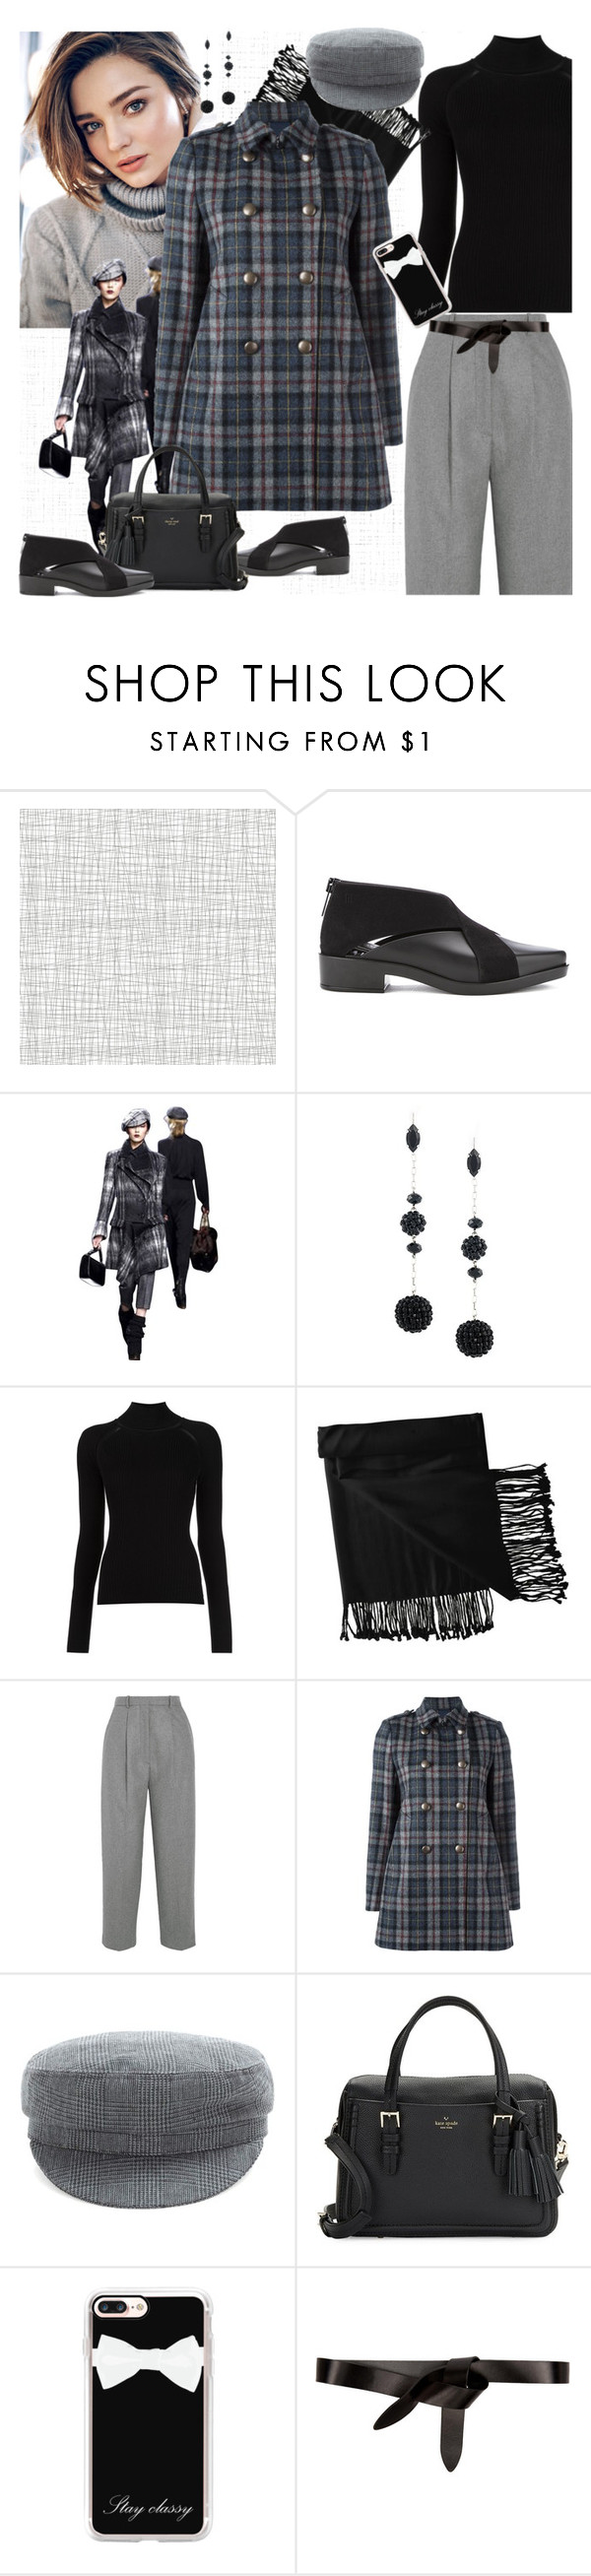 """Tartan"" by petalp ❤ liked on Polyvore featuring Kerr®, Christian Dior, Isabel Marant, Misha Nonoo, New Directions, Acne Studios, Aspesi, Étoile Isabel Marant, Kate Spade and Casetify"